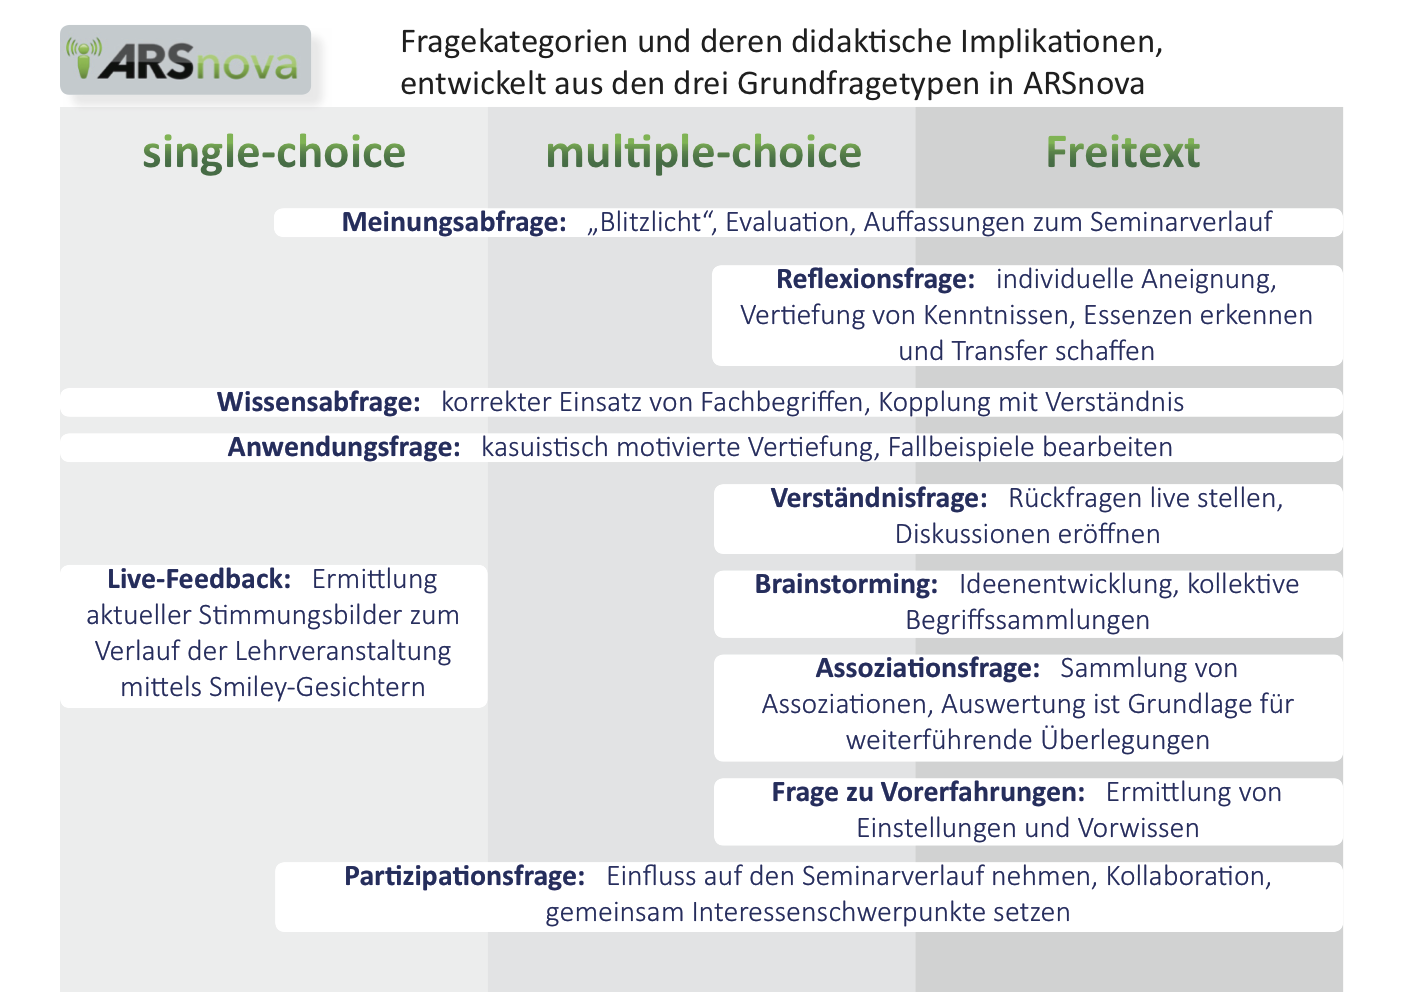 Abbildung aus http://www.medienimpulse.at/articles/view/656